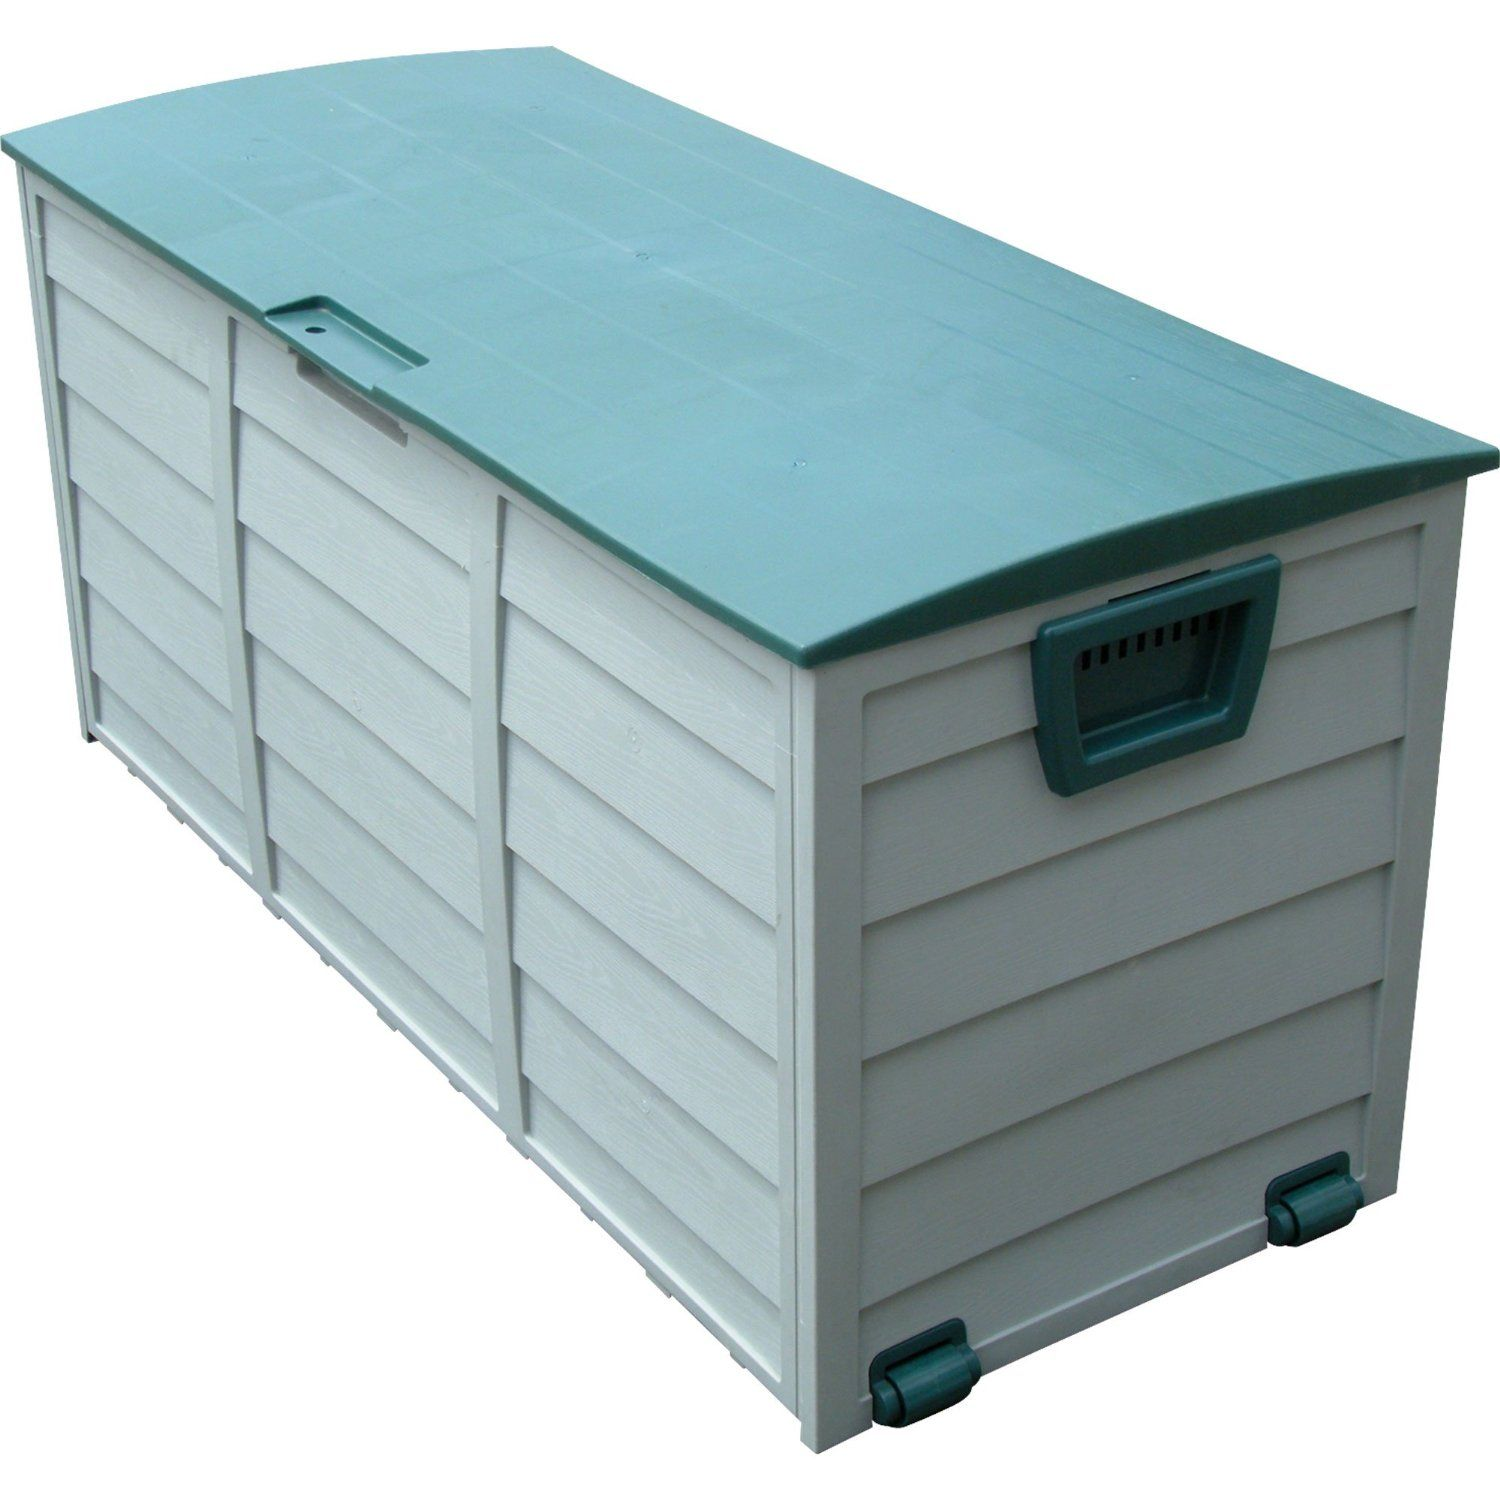 Stalwart 75-HDOB Heavy Duty Outdoor Storage Box. - Stalwart 75-HDOB Heavy Duty Outdoor Storage Box. Outdoor Storage